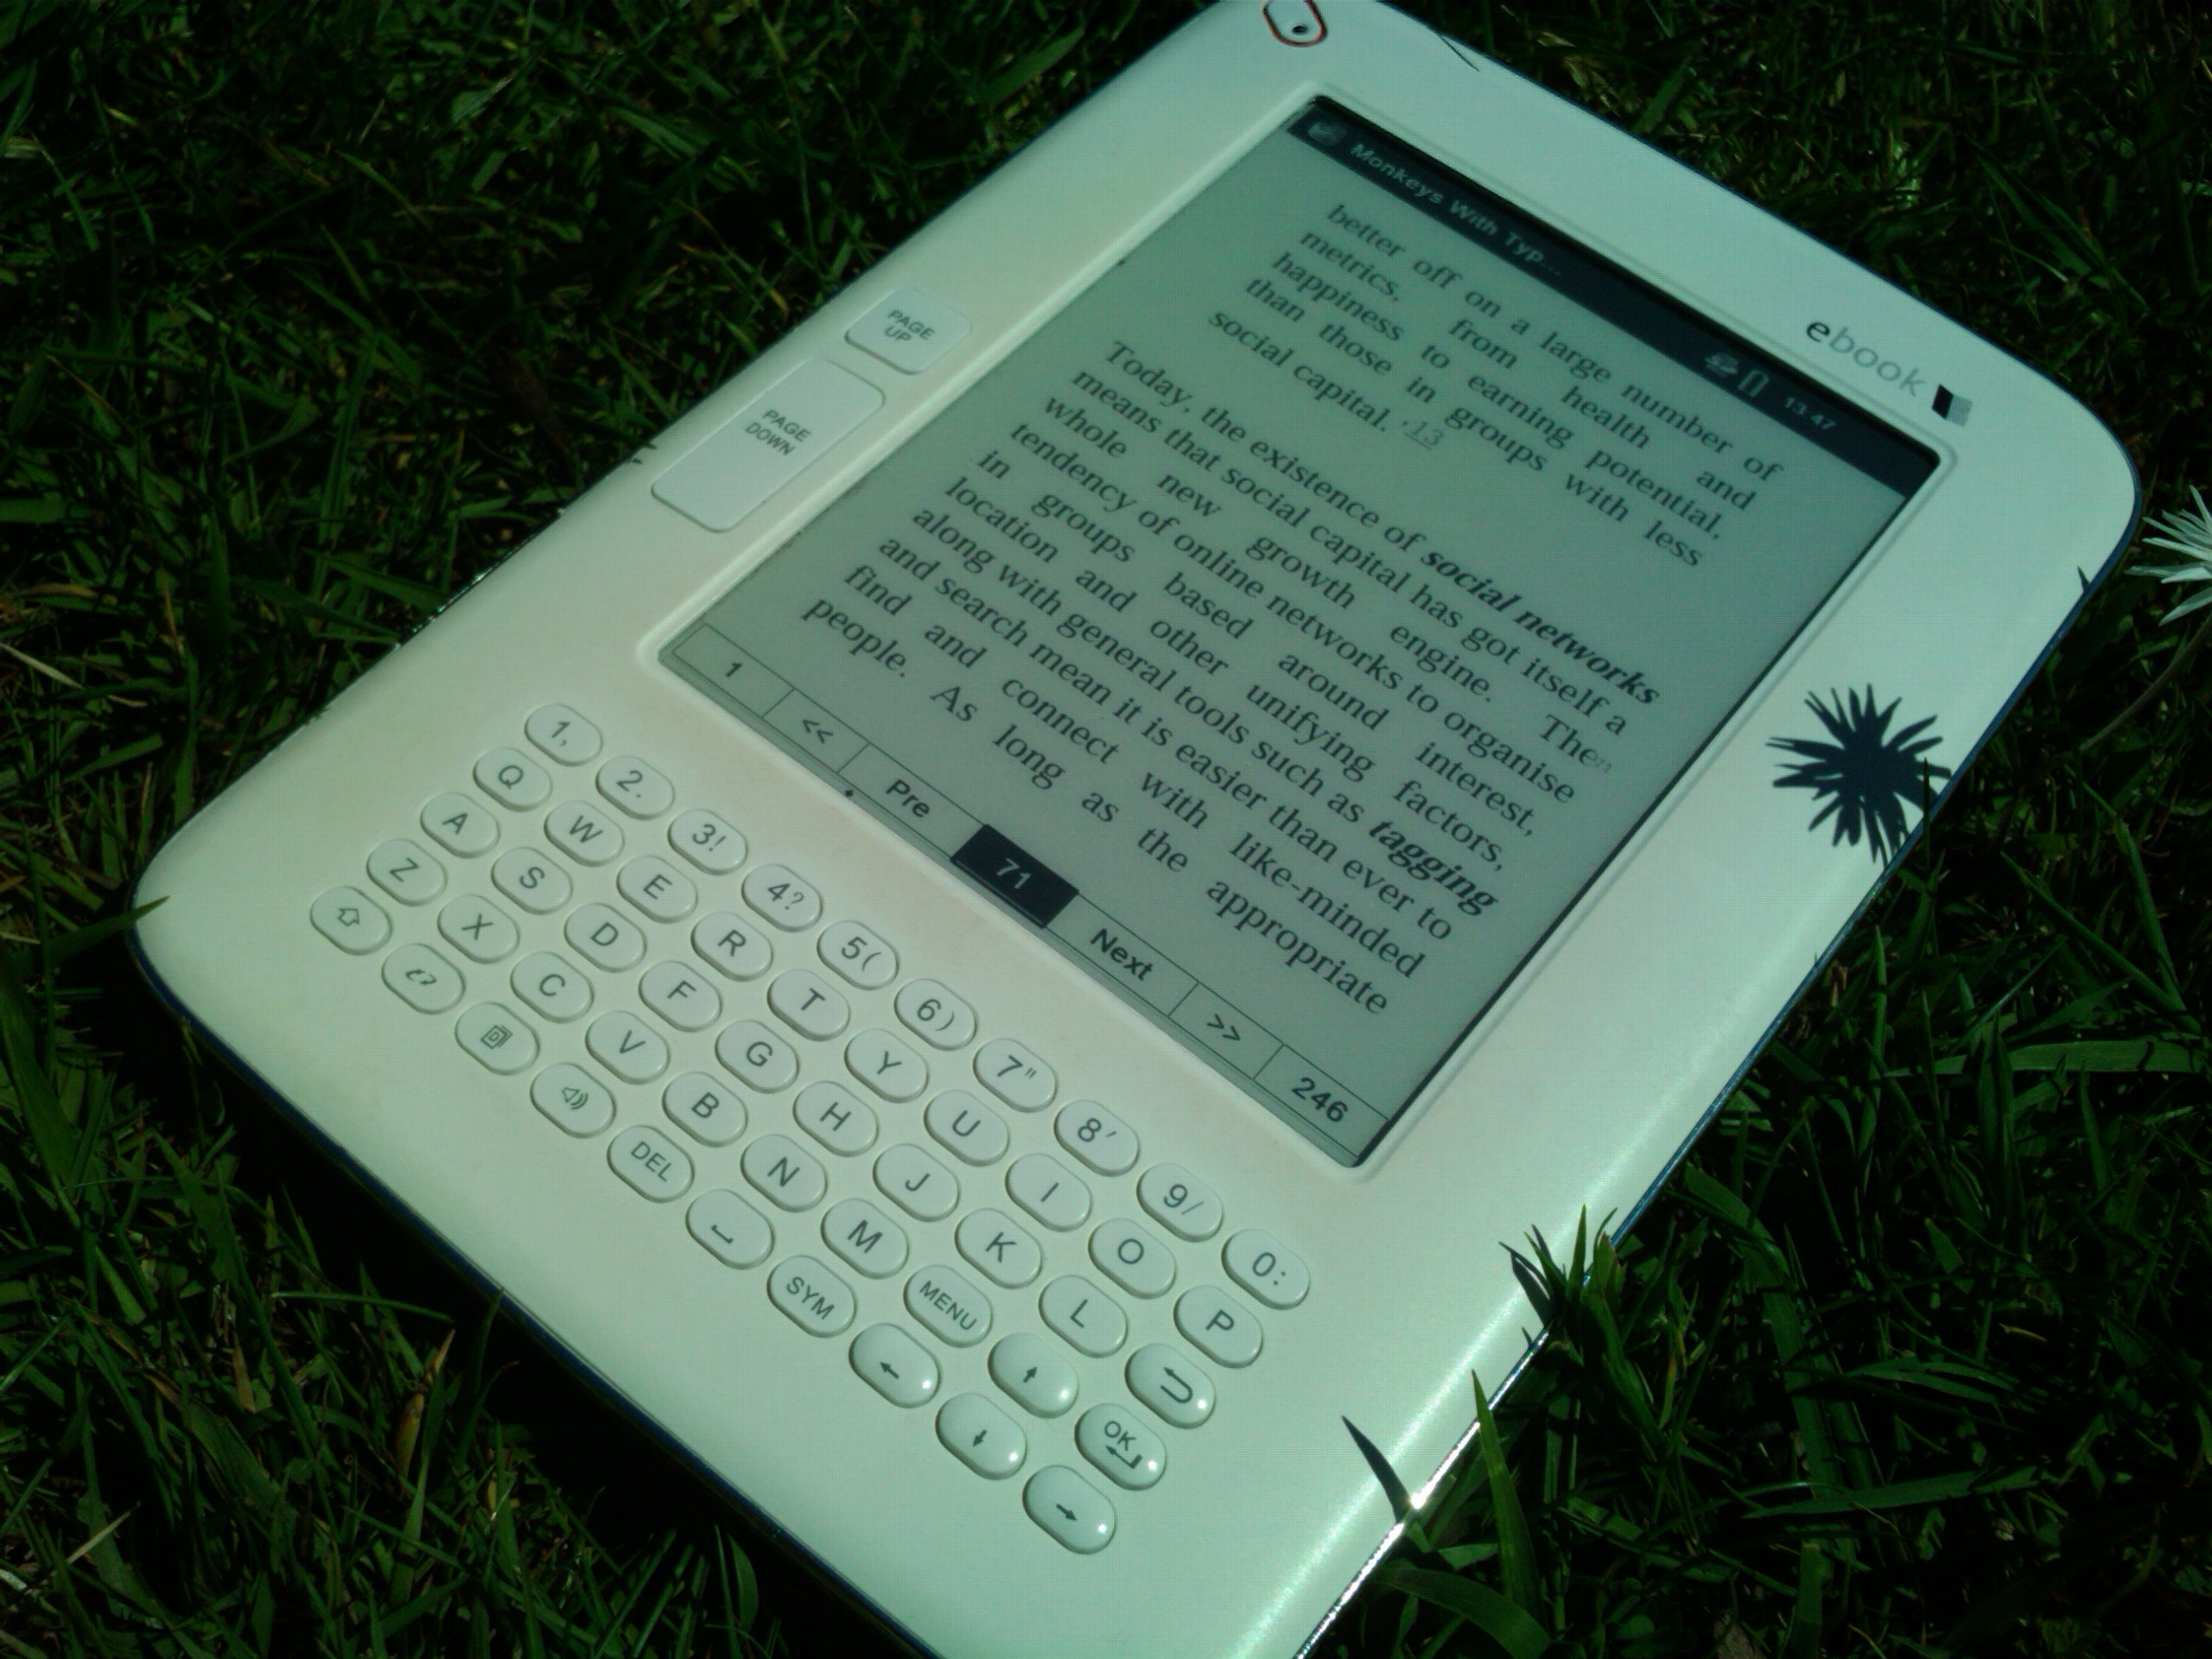 An ebook in a patch of grass